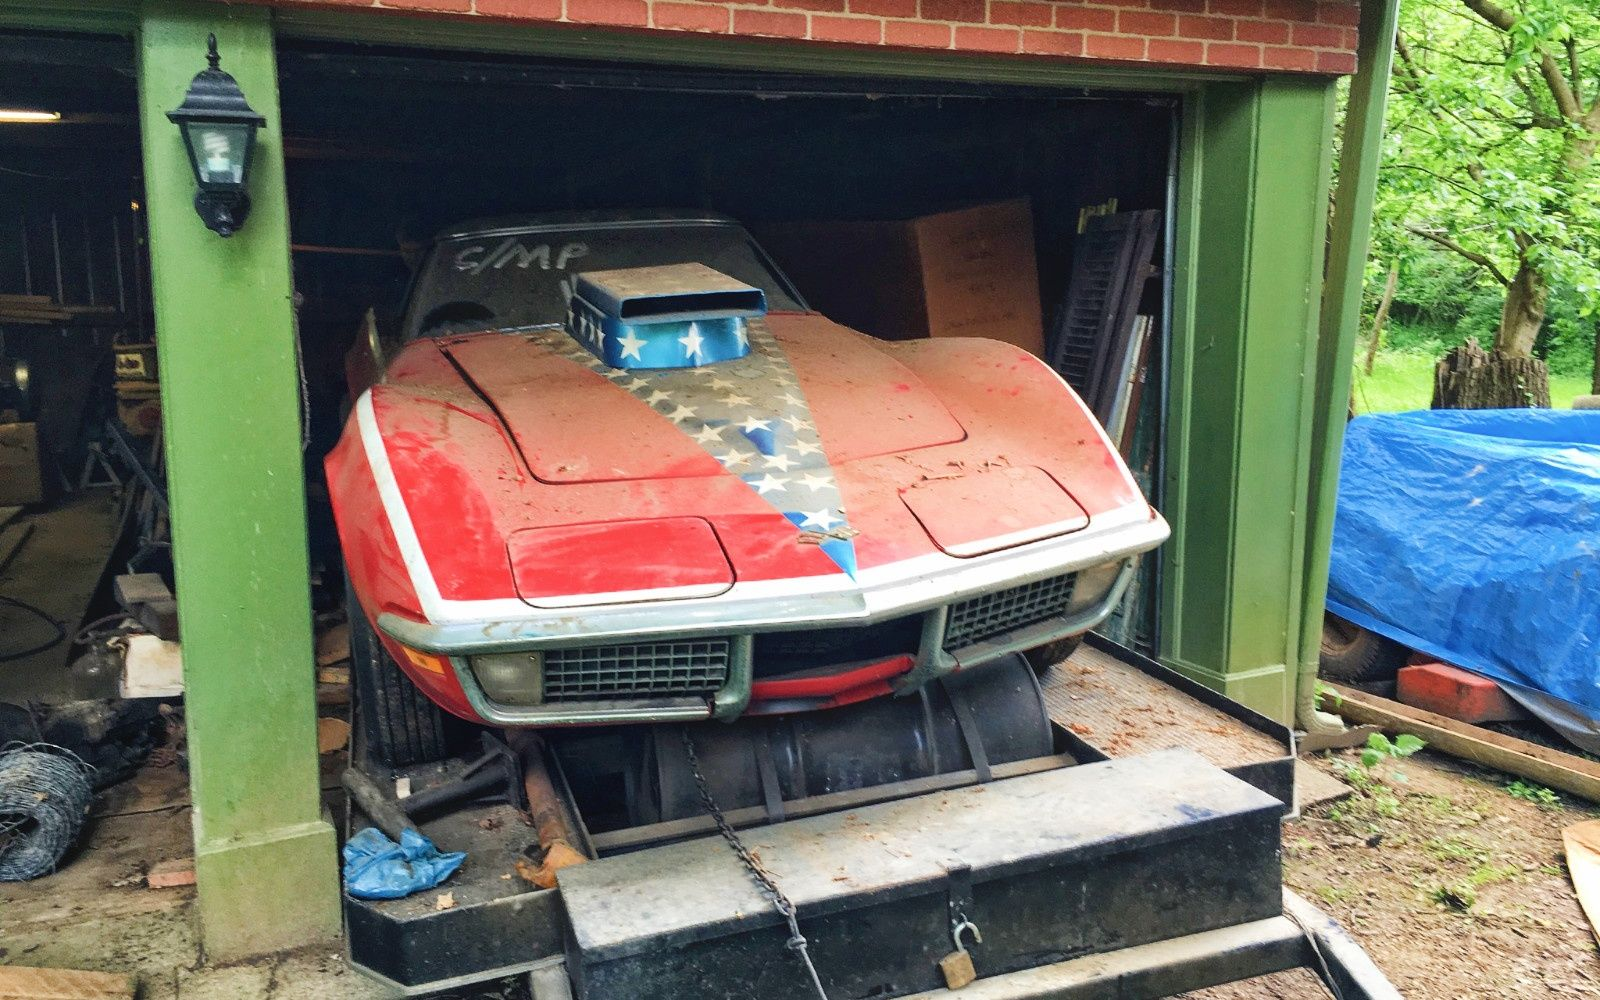 Incredible Corvette Found Buried In A Garage Barn Finds Barn Find Cars Abandoned Cars